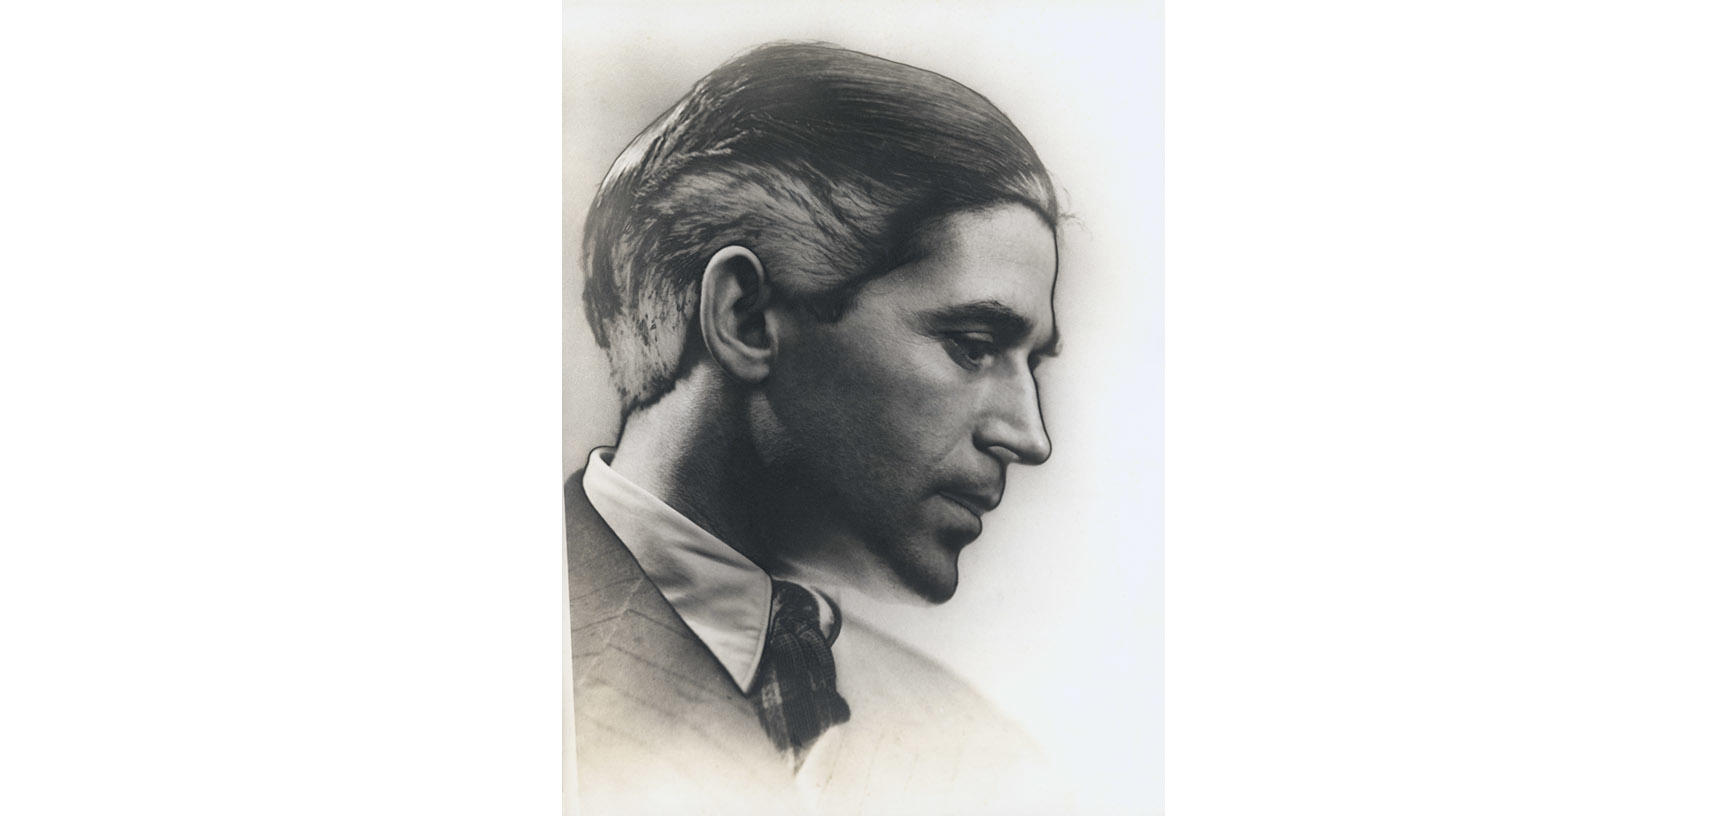 A photograph of a young man in profile